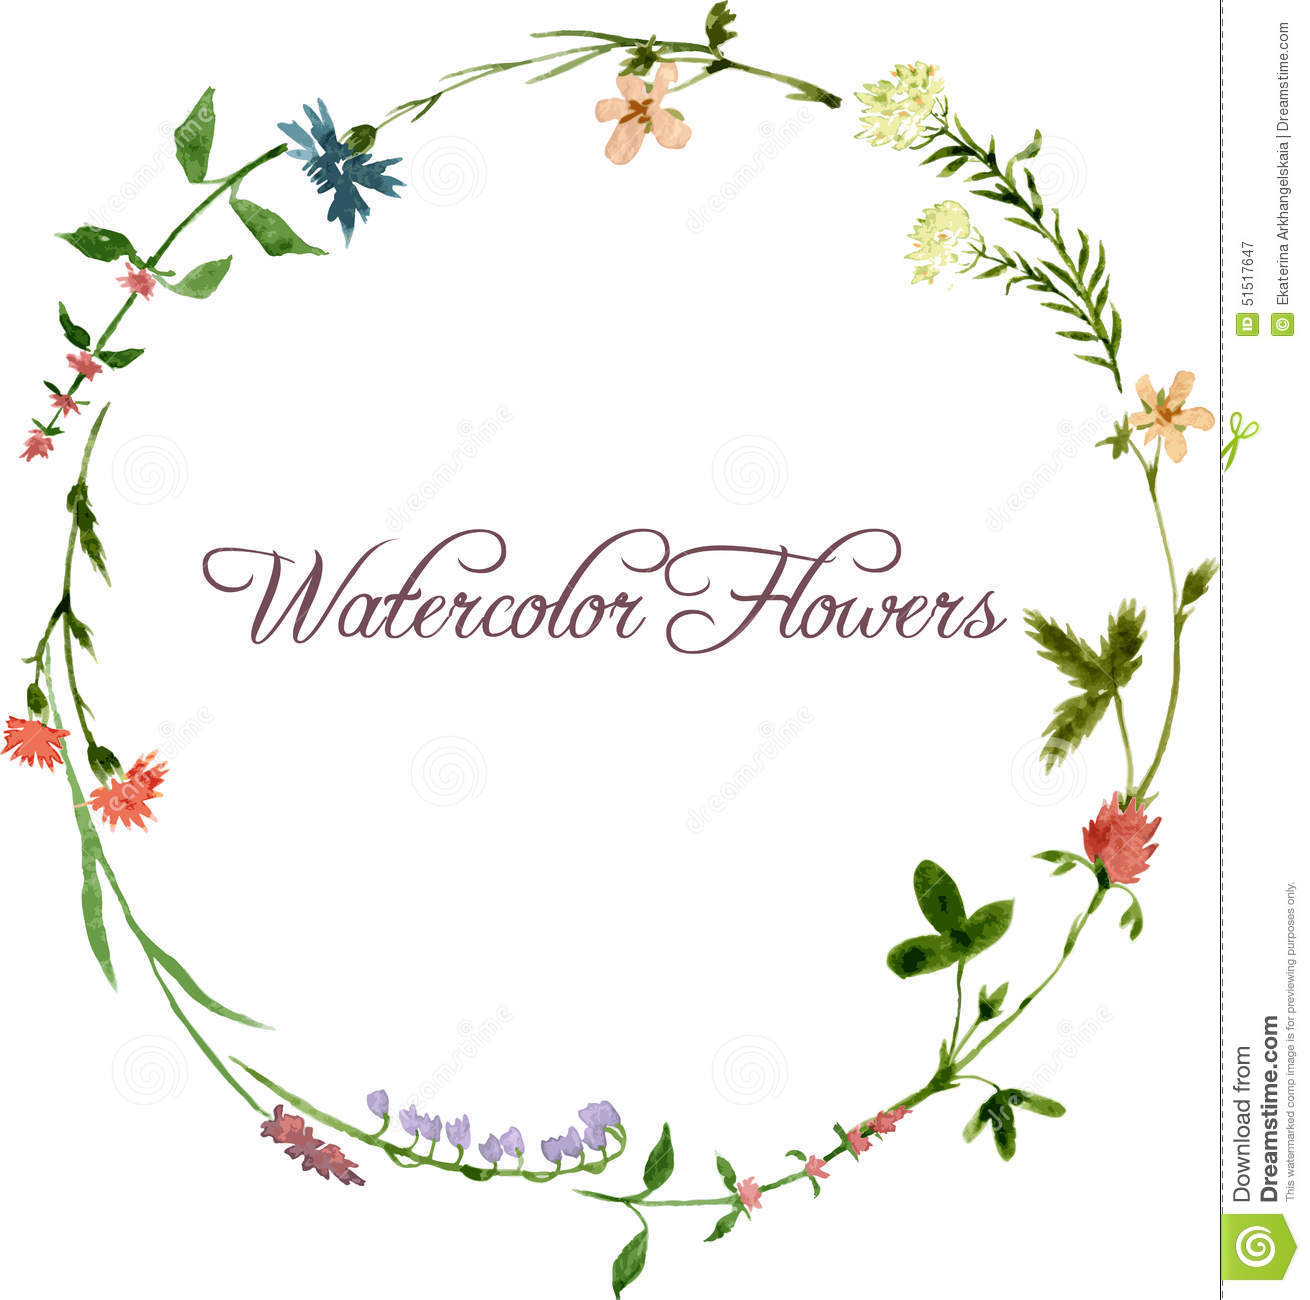 Vector Watercolor Floral Frame Stock Vector - Image: 51517647